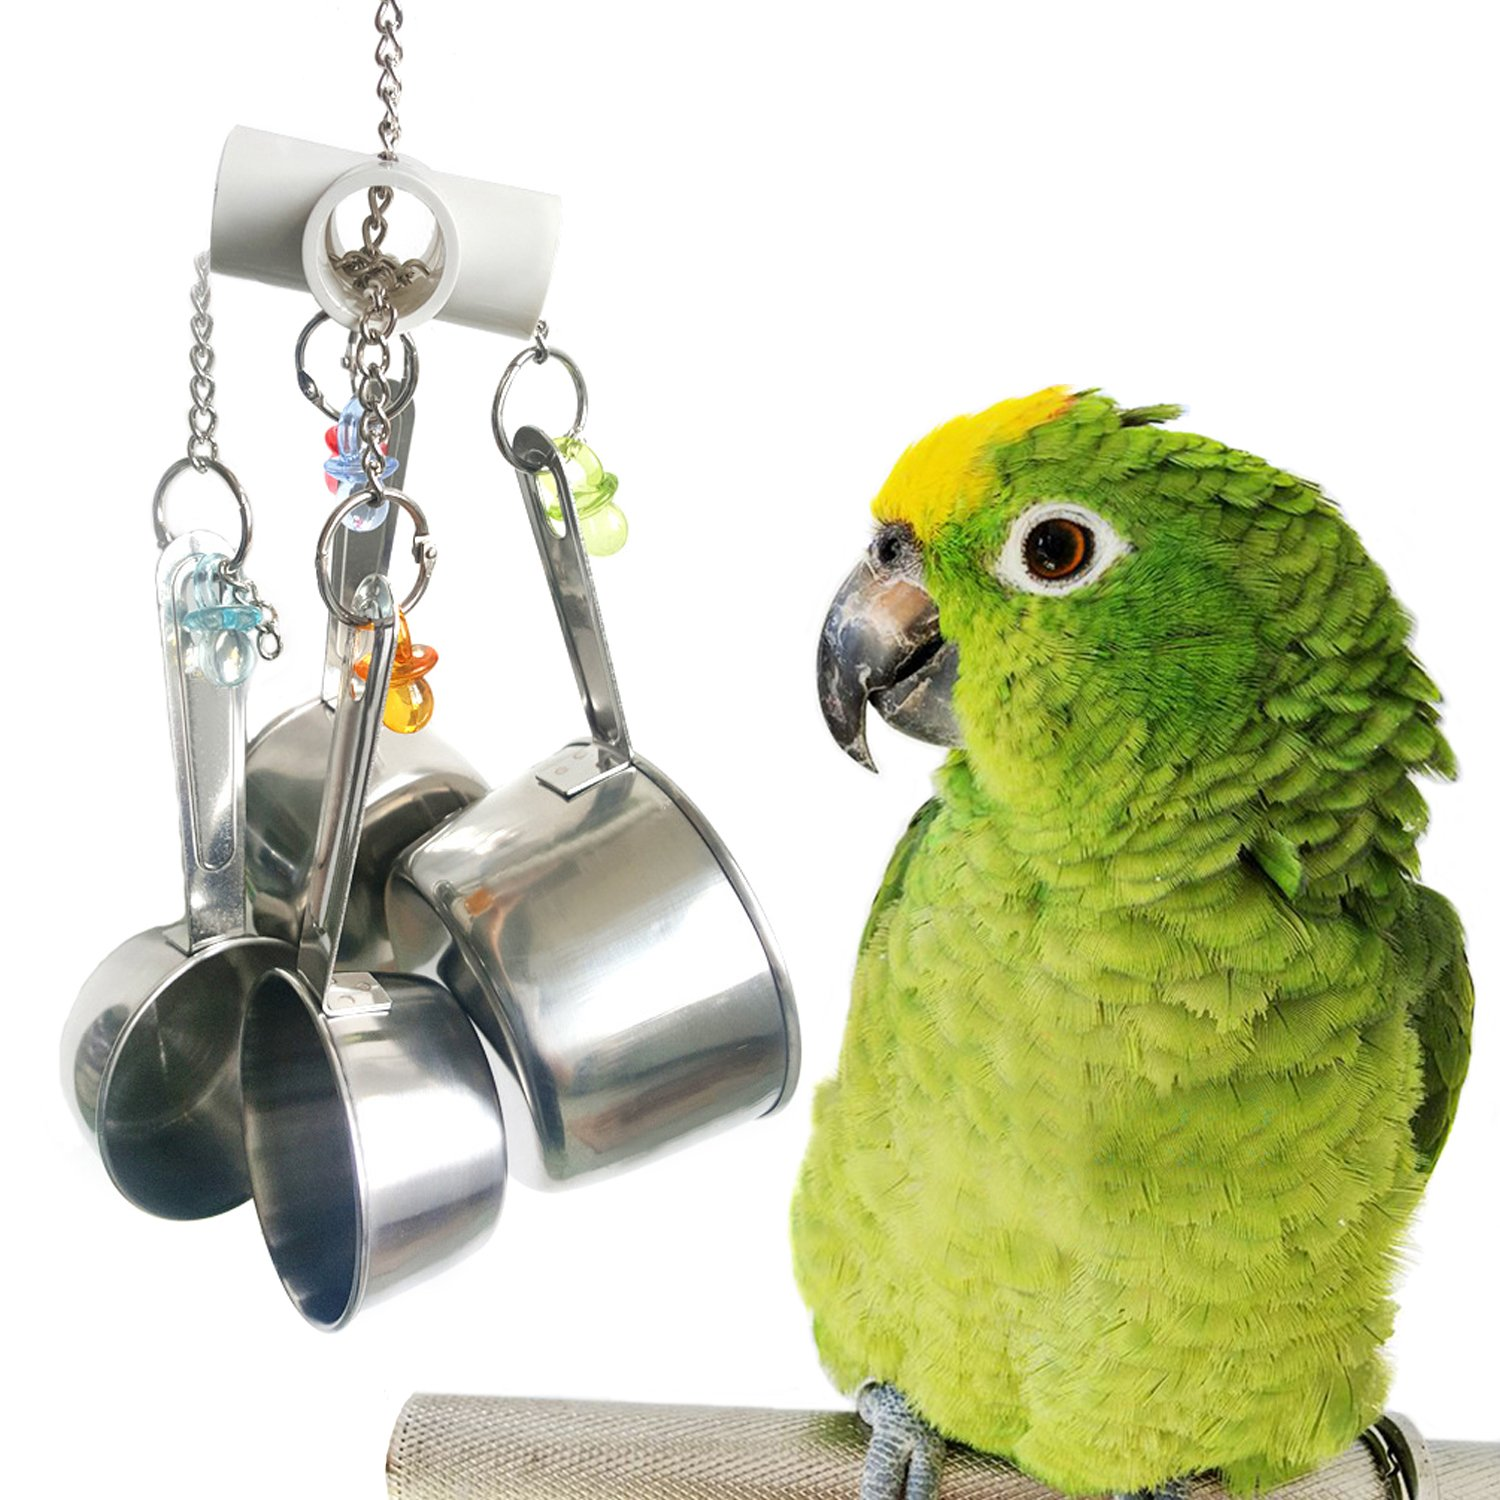 BWOGUE Stainless Steel Cup Bell Toys for Birds, Heavy Duty Bird Cage Toys for Parrots African Grey Amazon Cockatoo Conure by BWOGUE